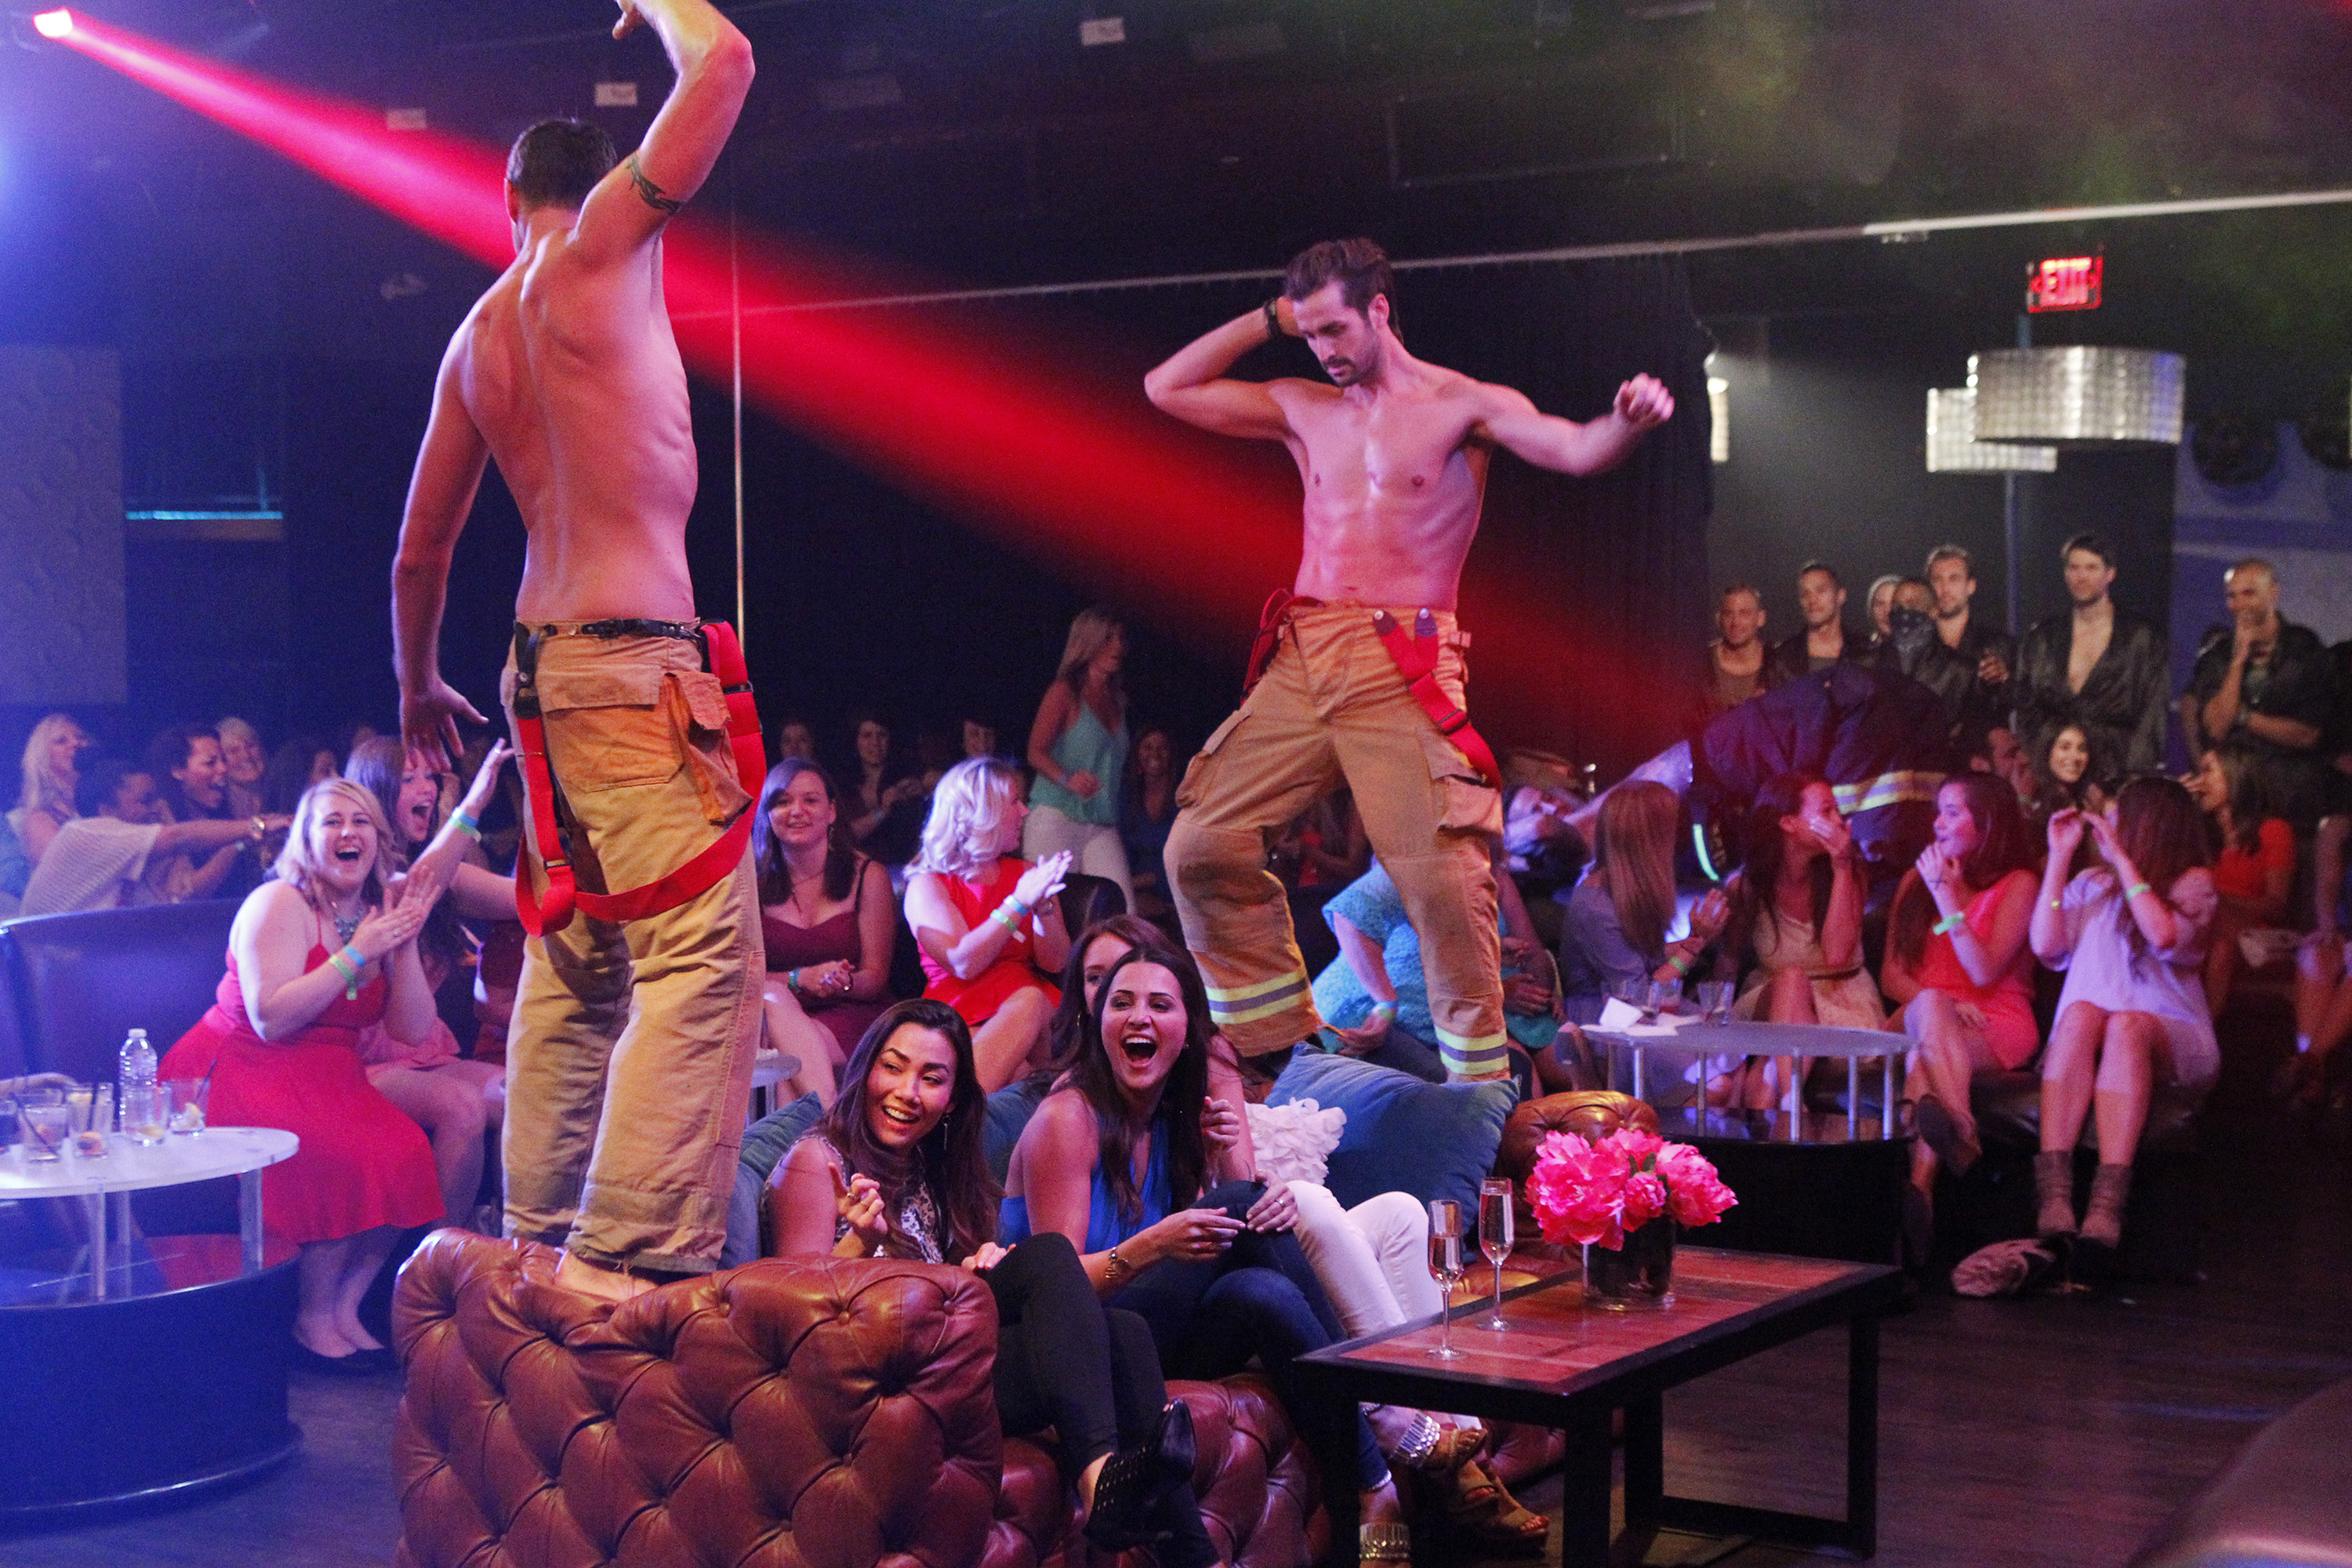 Fourteen men join Andi at a hip Hollywood nightclub, but they are in for a big surprise when they are met by members of a popular male exotic revue.